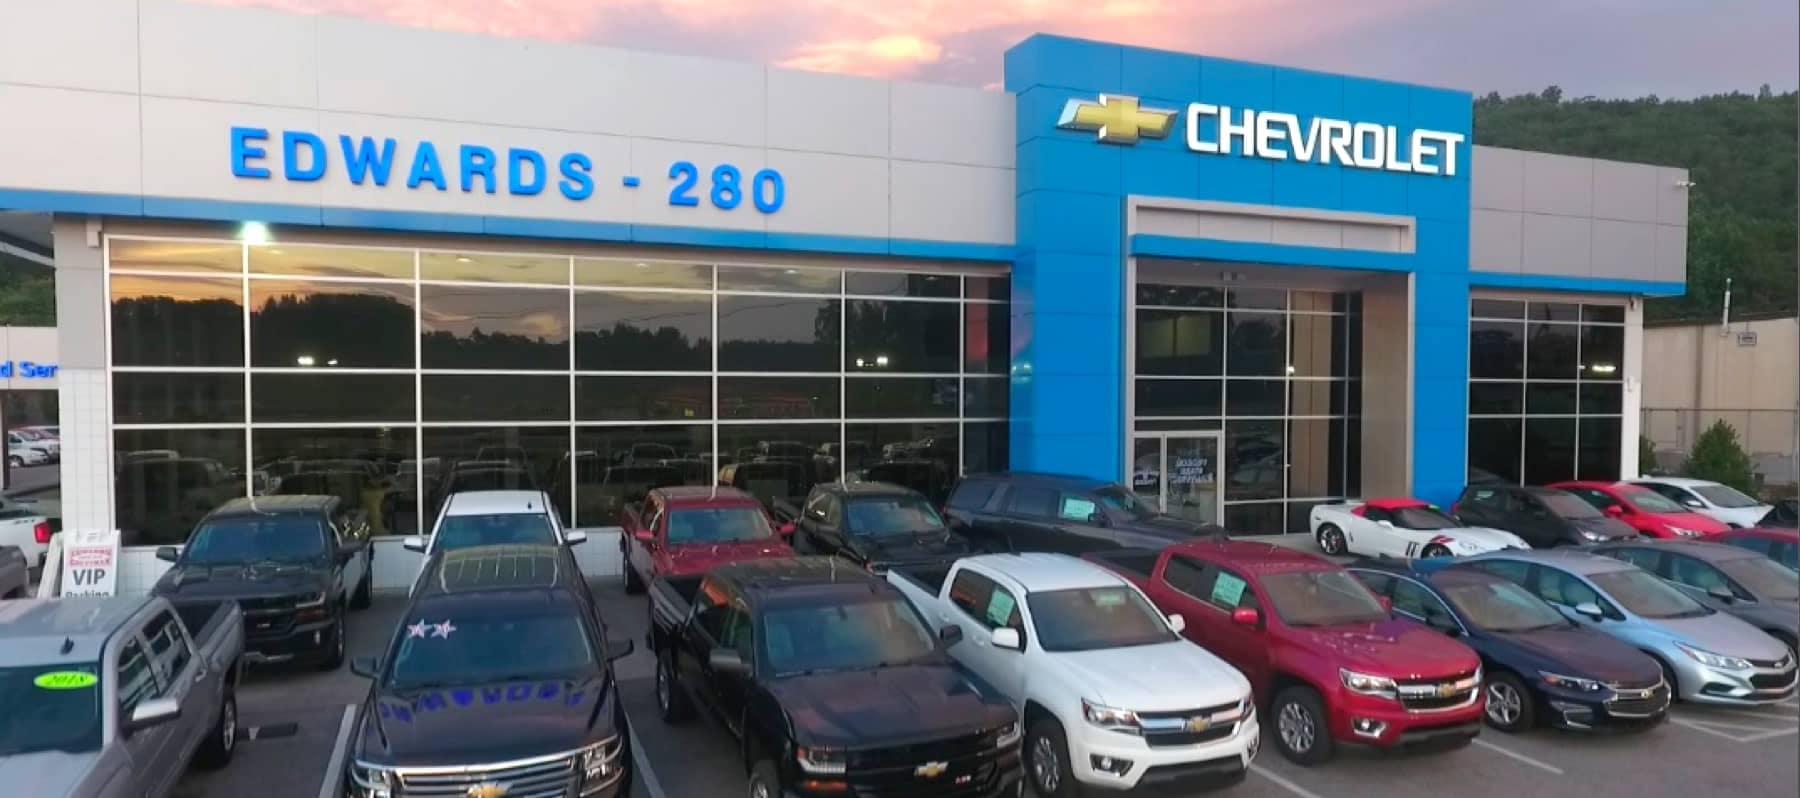 Welcome To Edwards Chevrolet 280 Inc In Birmingham Al